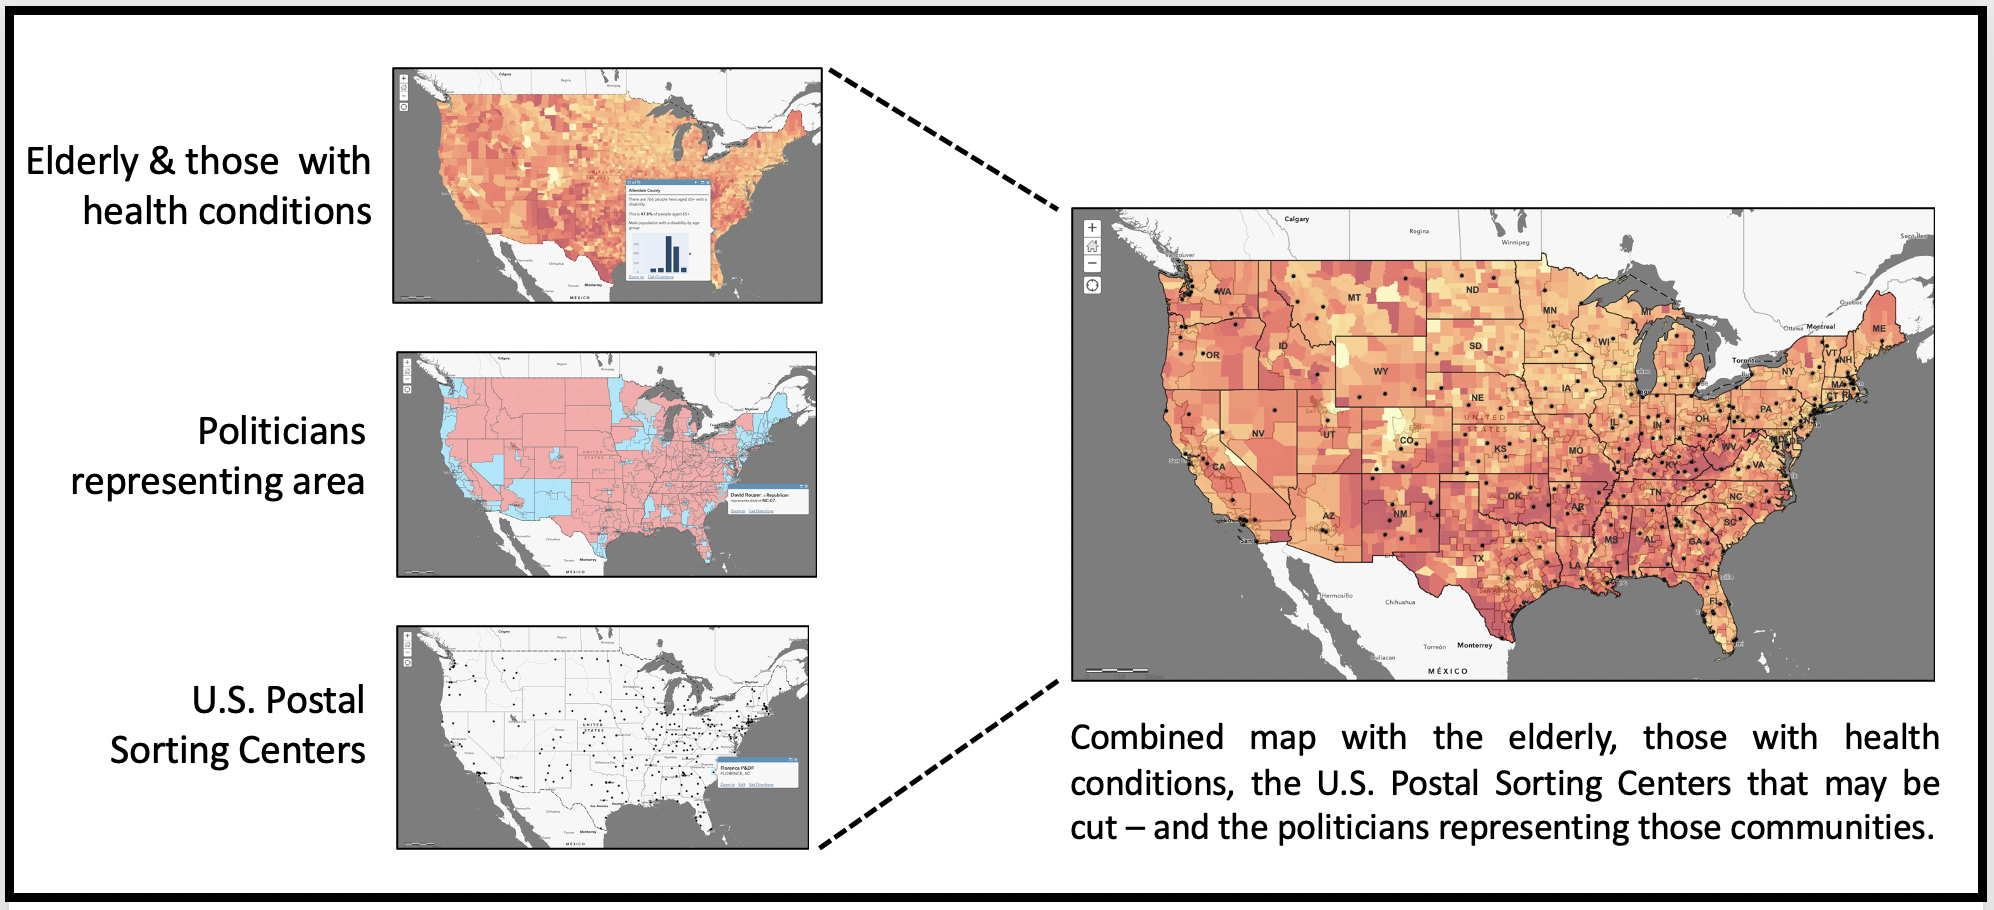 Mapping three layers - the elderly, those with health conditions, rural communities, U.S. Postal Sorting Centers and the politicians who represent those areas.